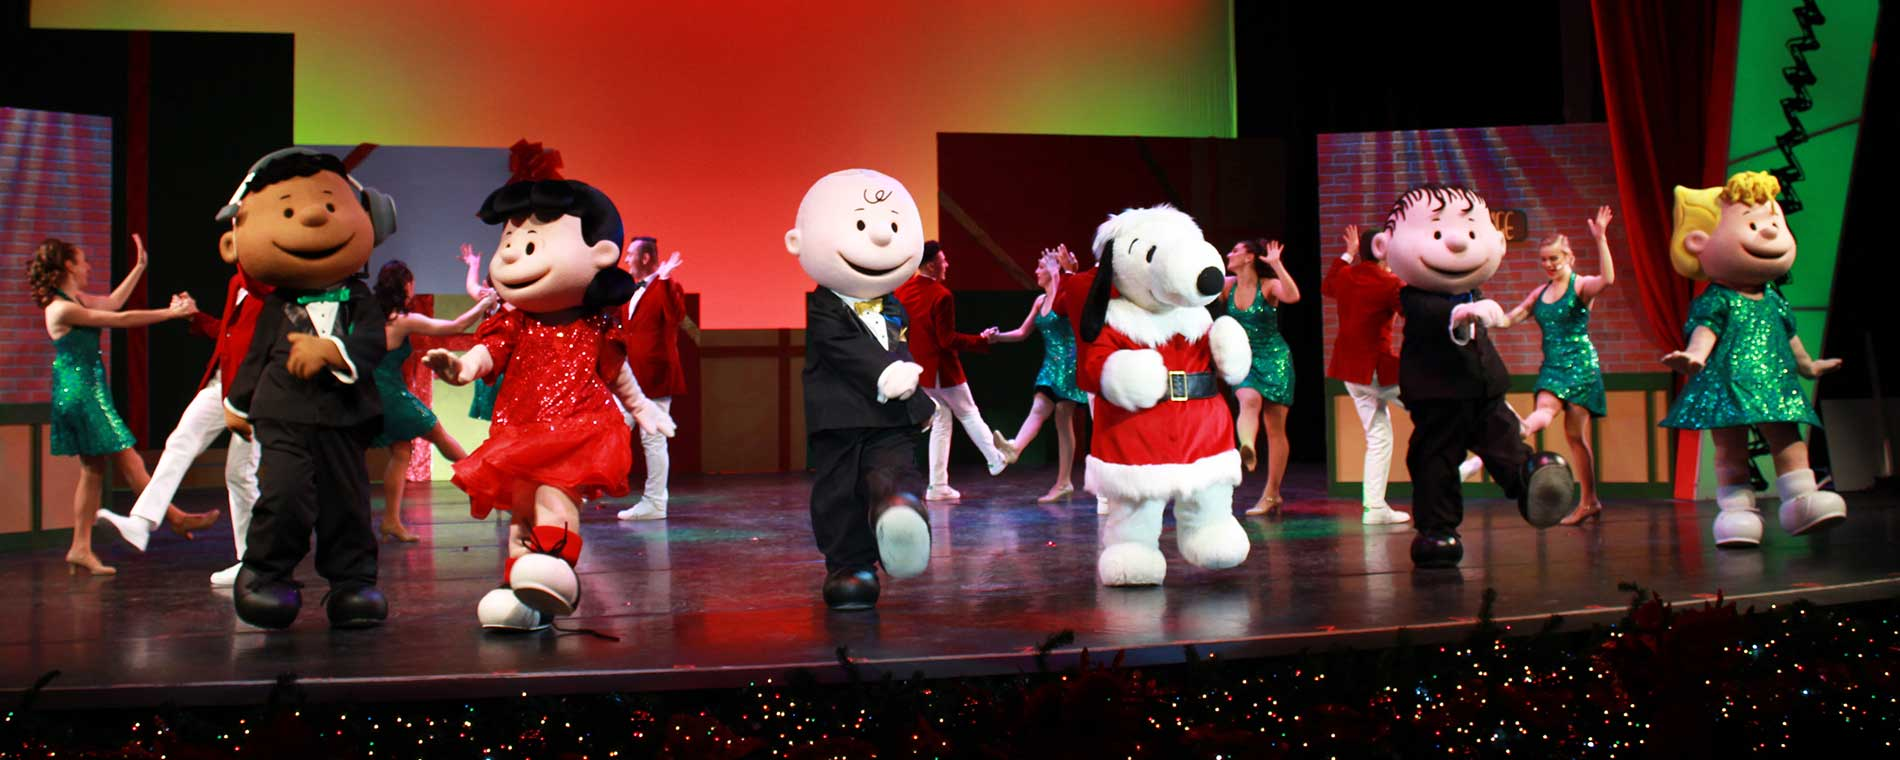 Charlie Browns Christmas.Charlie Brown S Christmas Spectacular Winterfest Carowinds